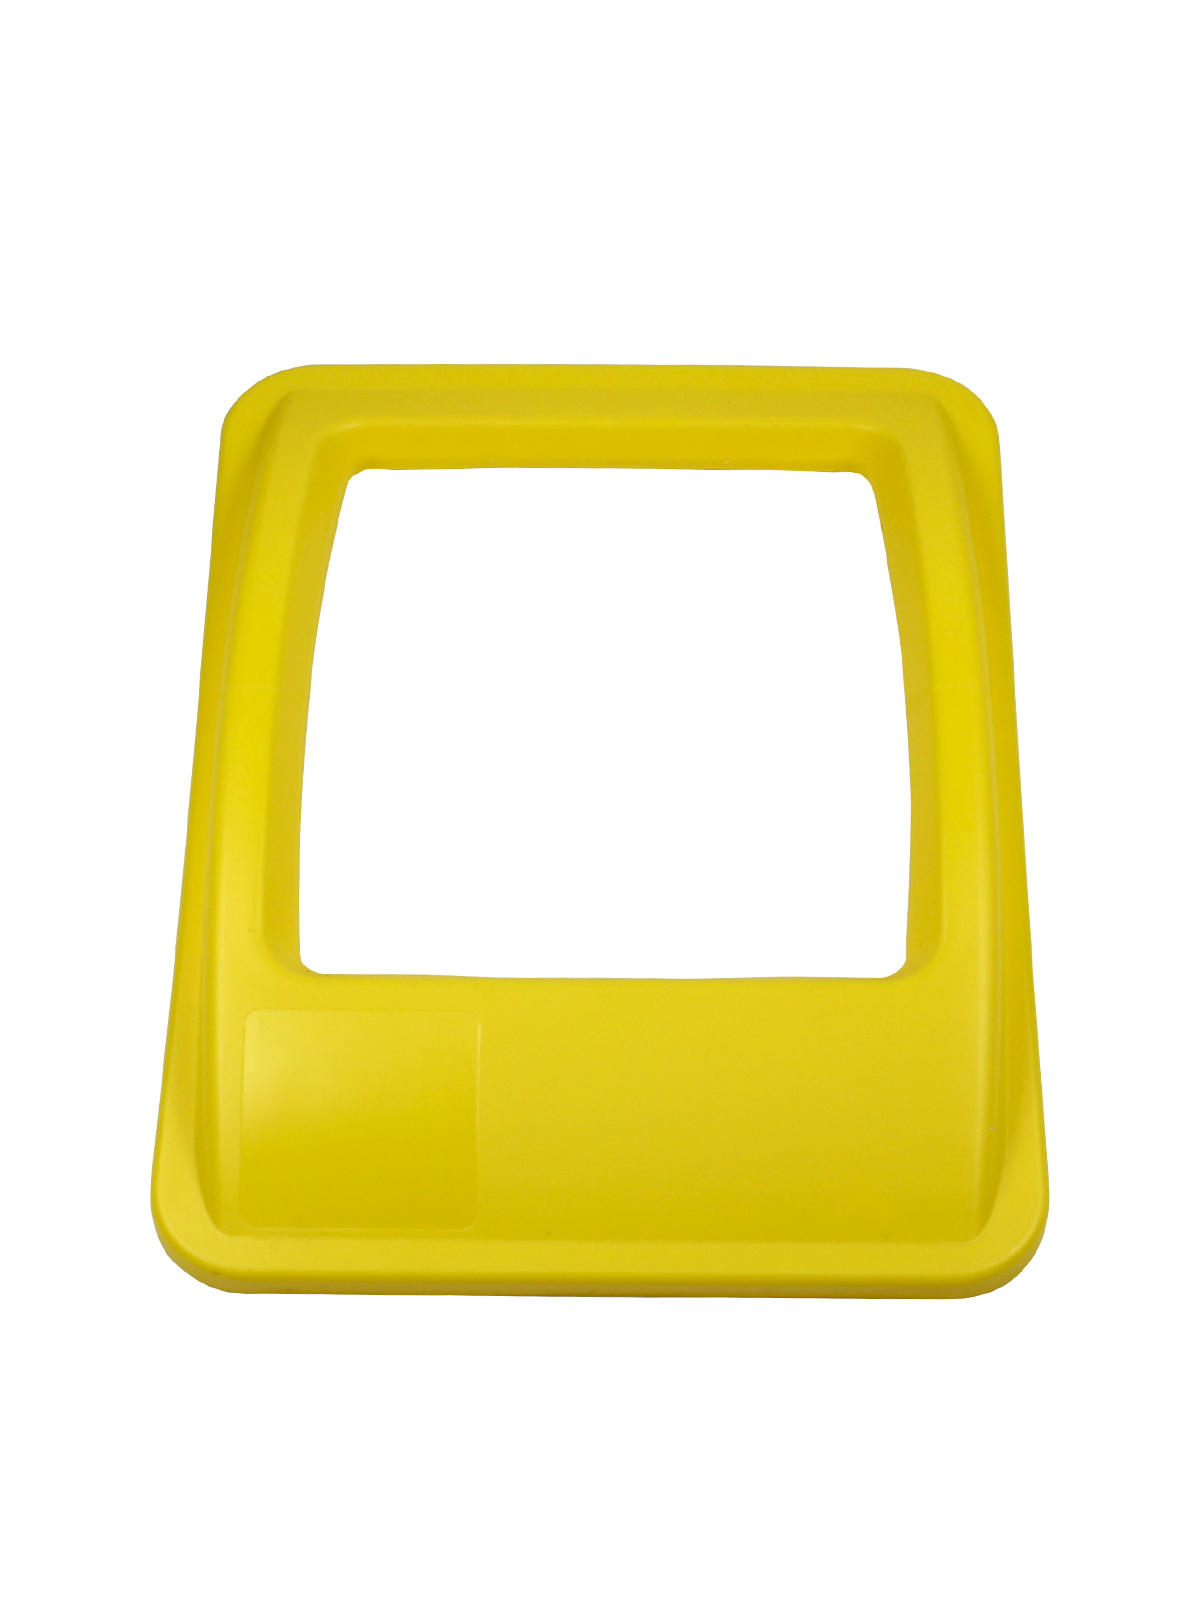 WASTE WATCHER XL - Lid - Full - Yellow